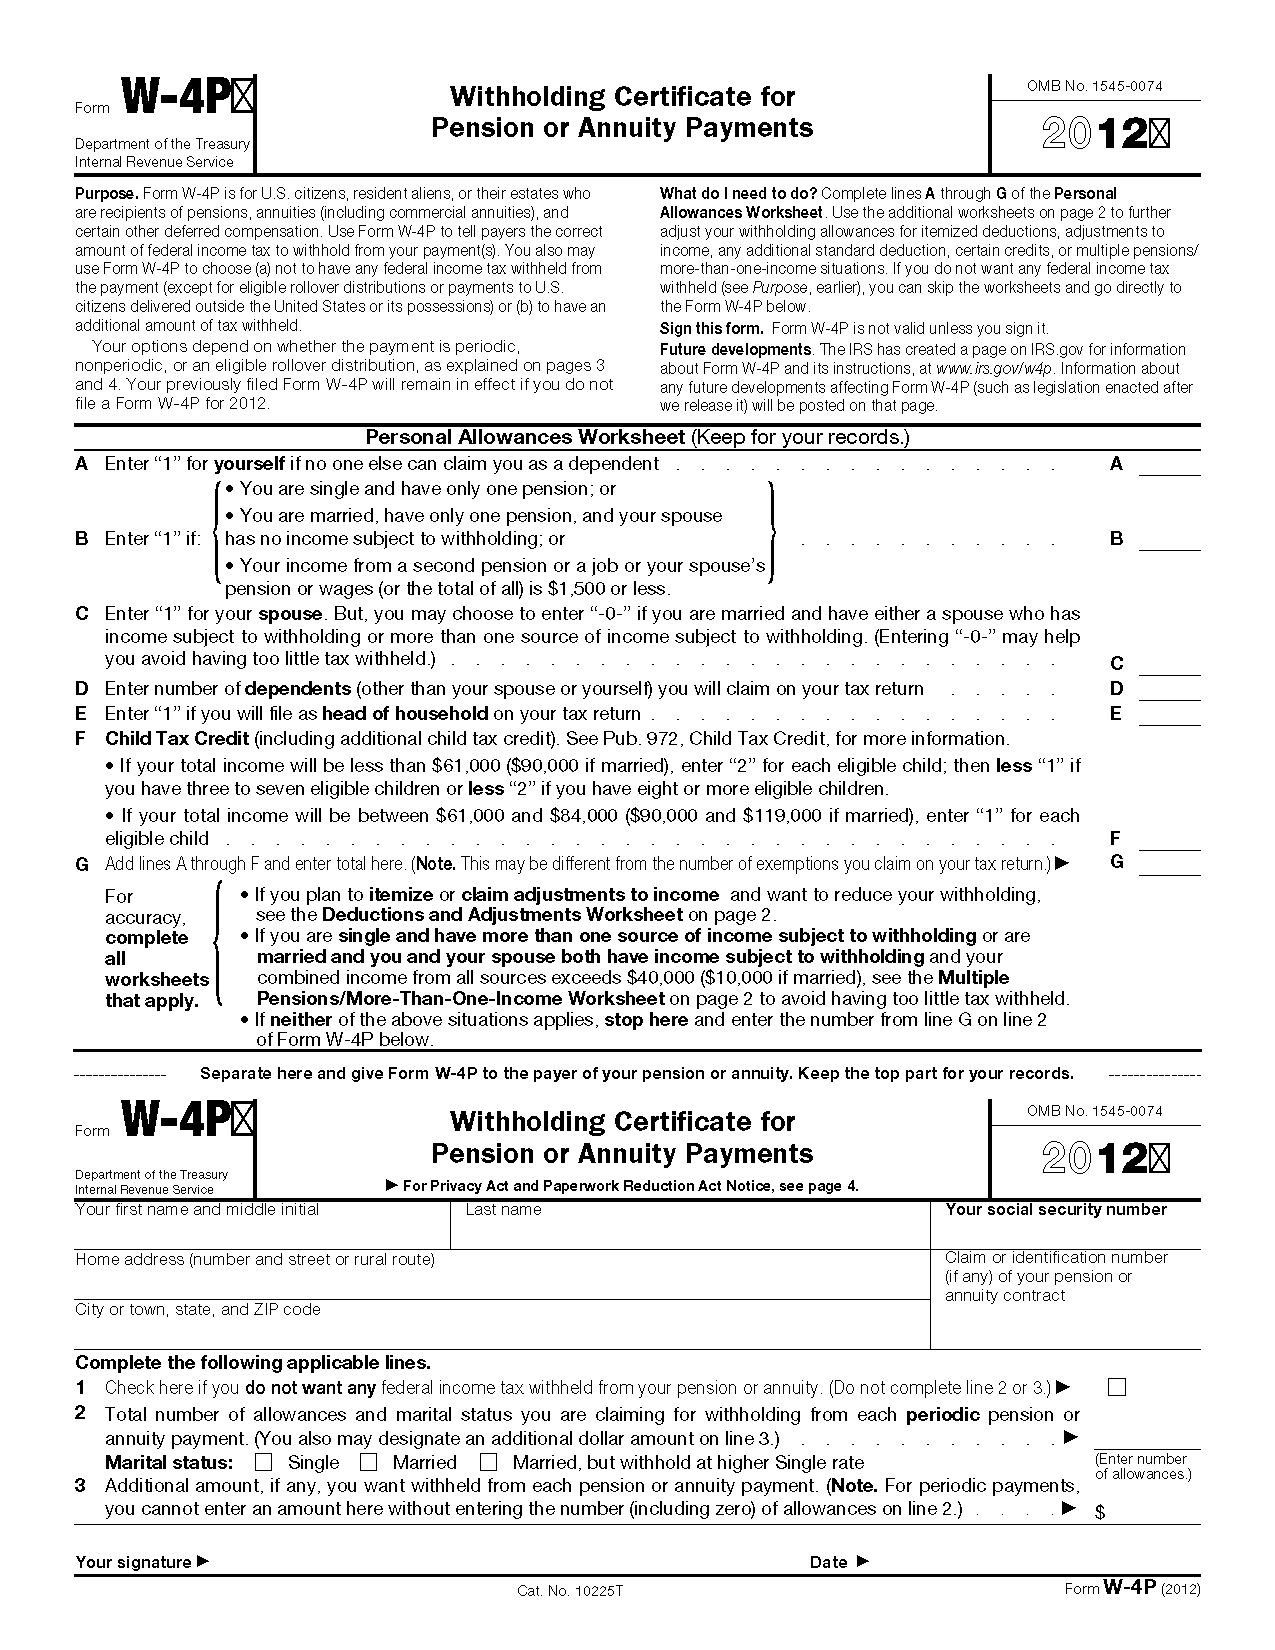 Irs Form W 4 Gratuits Proposes Par Nos Experts